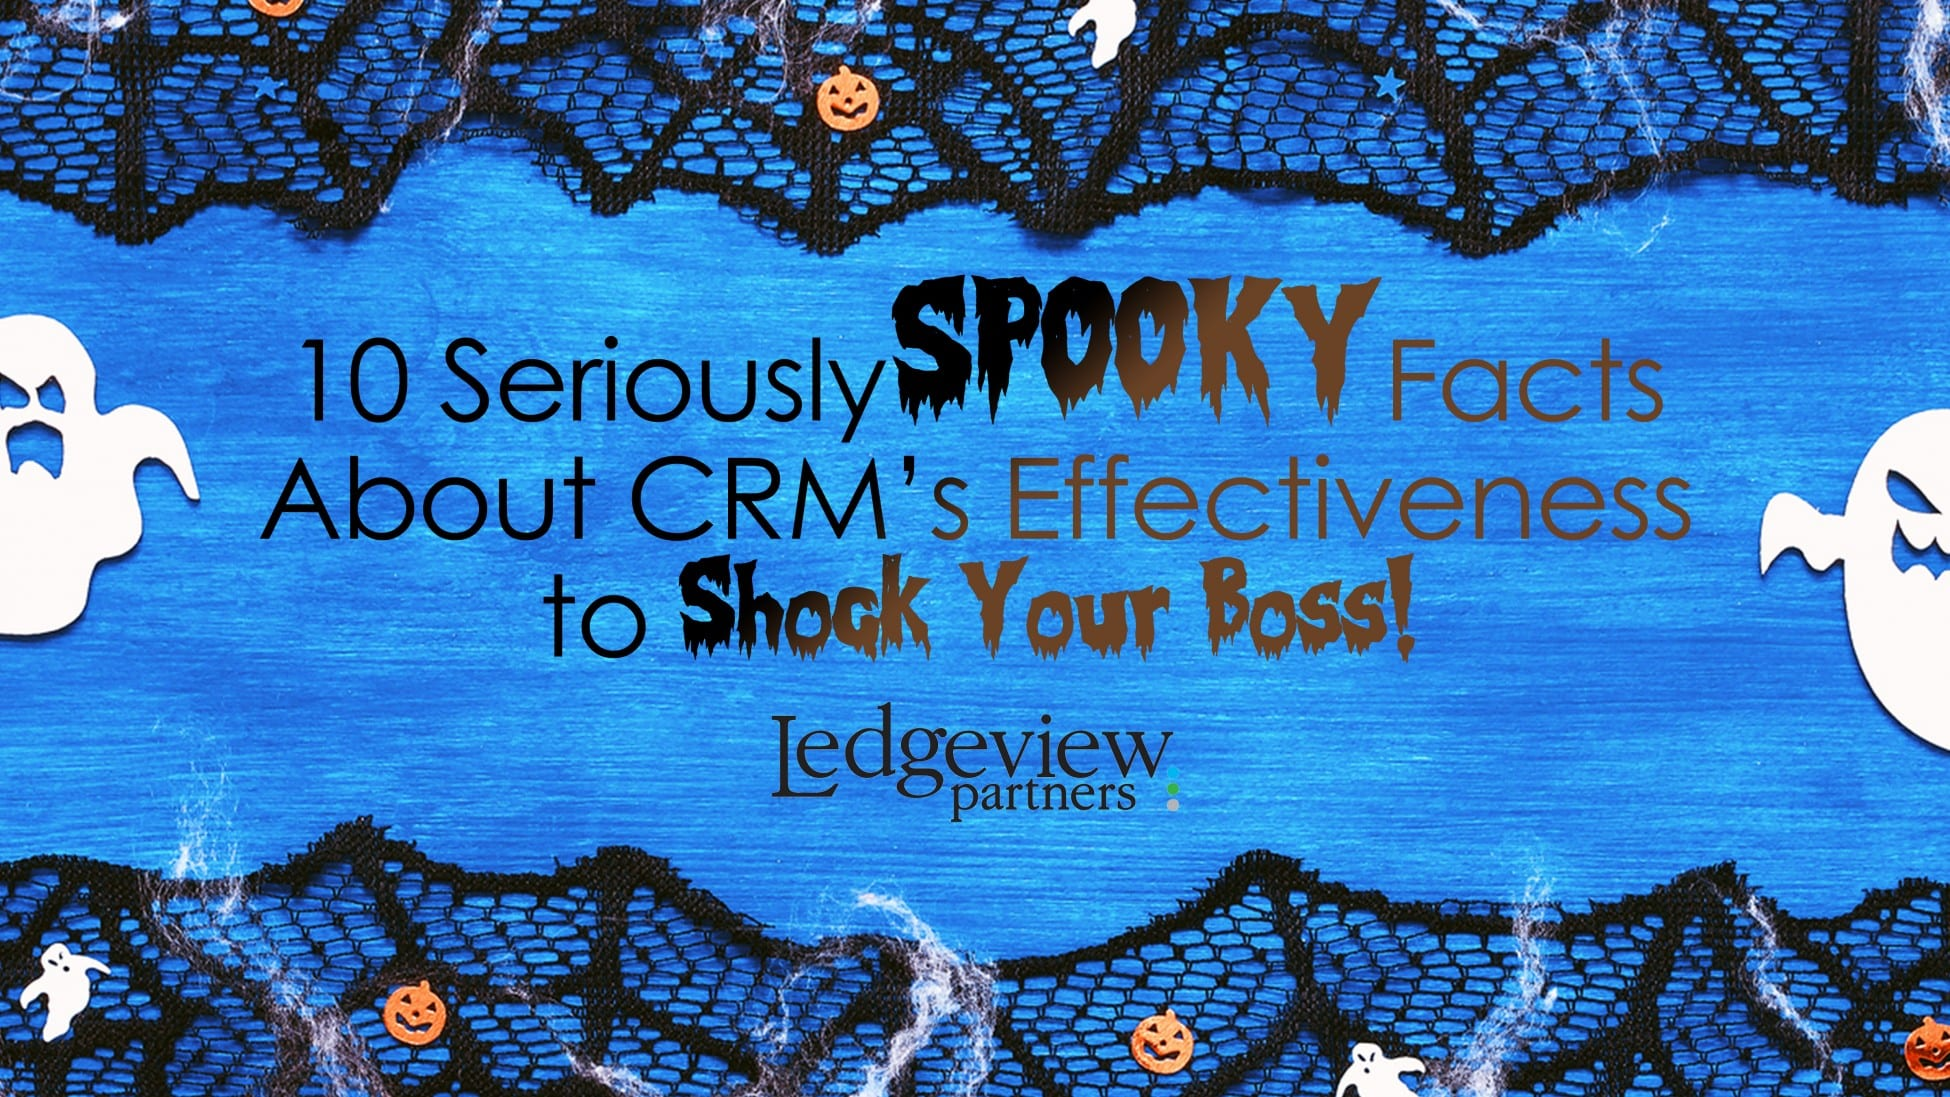 Ledgeview Partners 10 Spooky CRM Facts